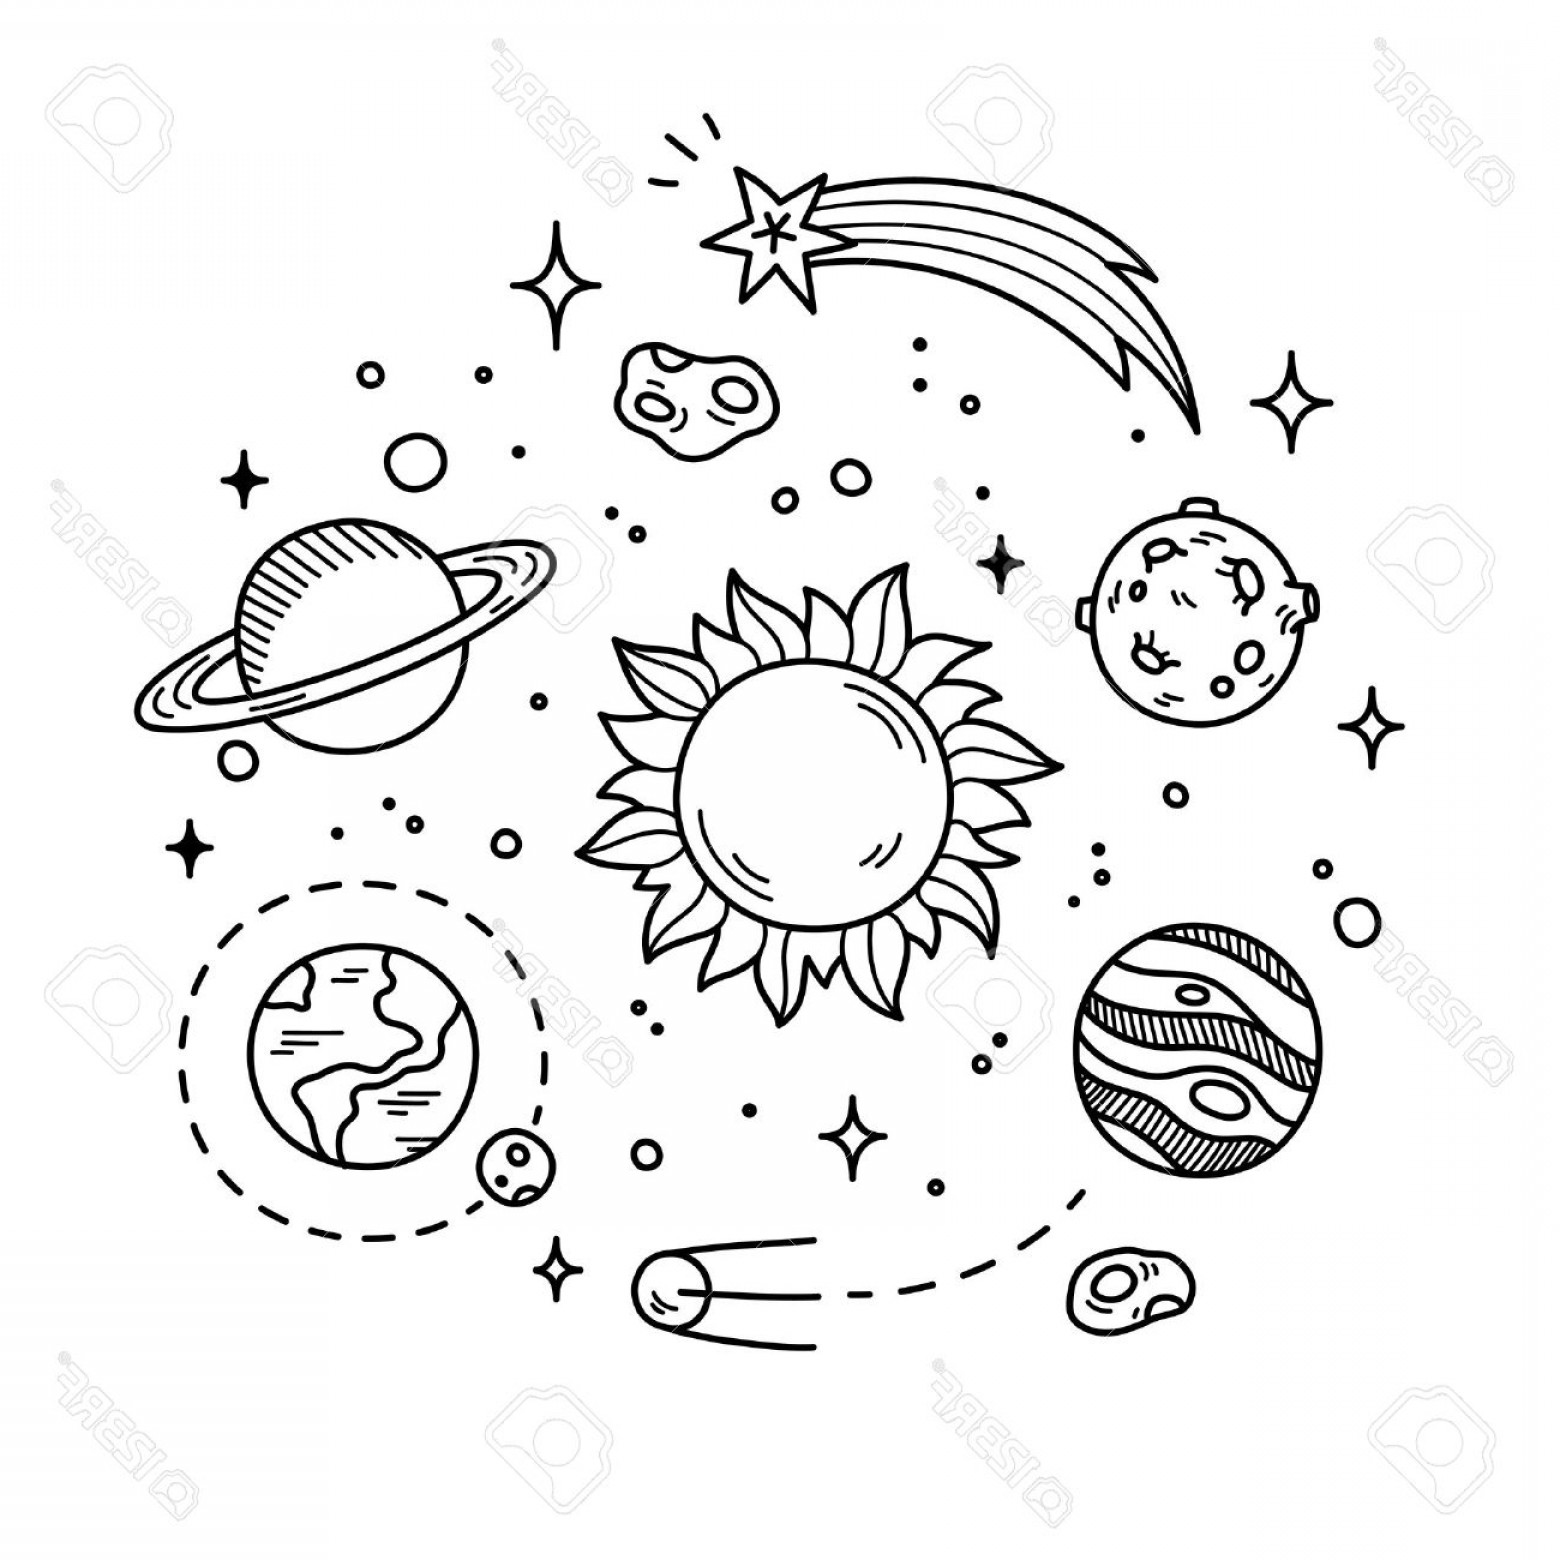 Outer space clipart black and white banner free library Photostock Vector Hand Drawn Solar System With Sun Planets ... banner free library